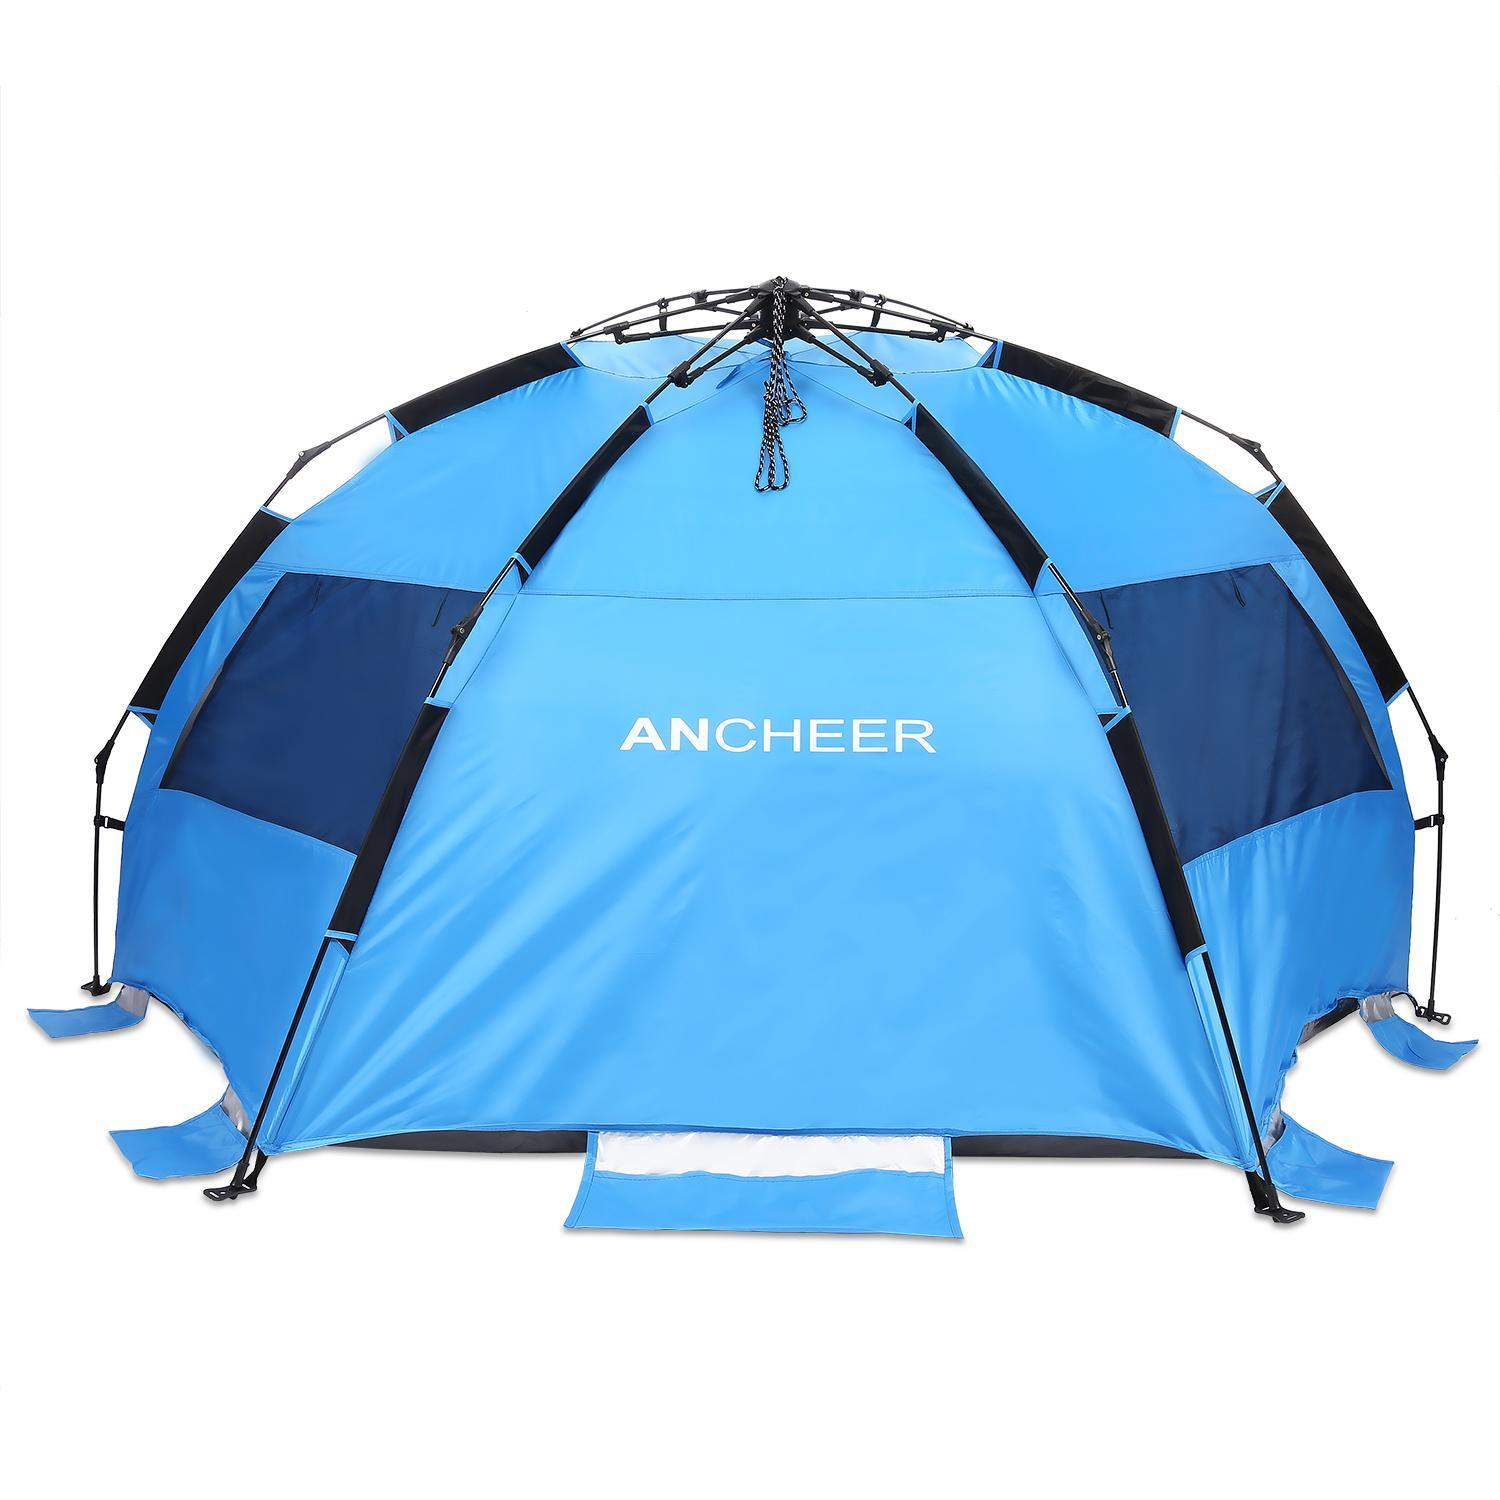 Clearance! Polyester Pop-up Beach Tent  Waterproof UV Shelter for  3-4 Person